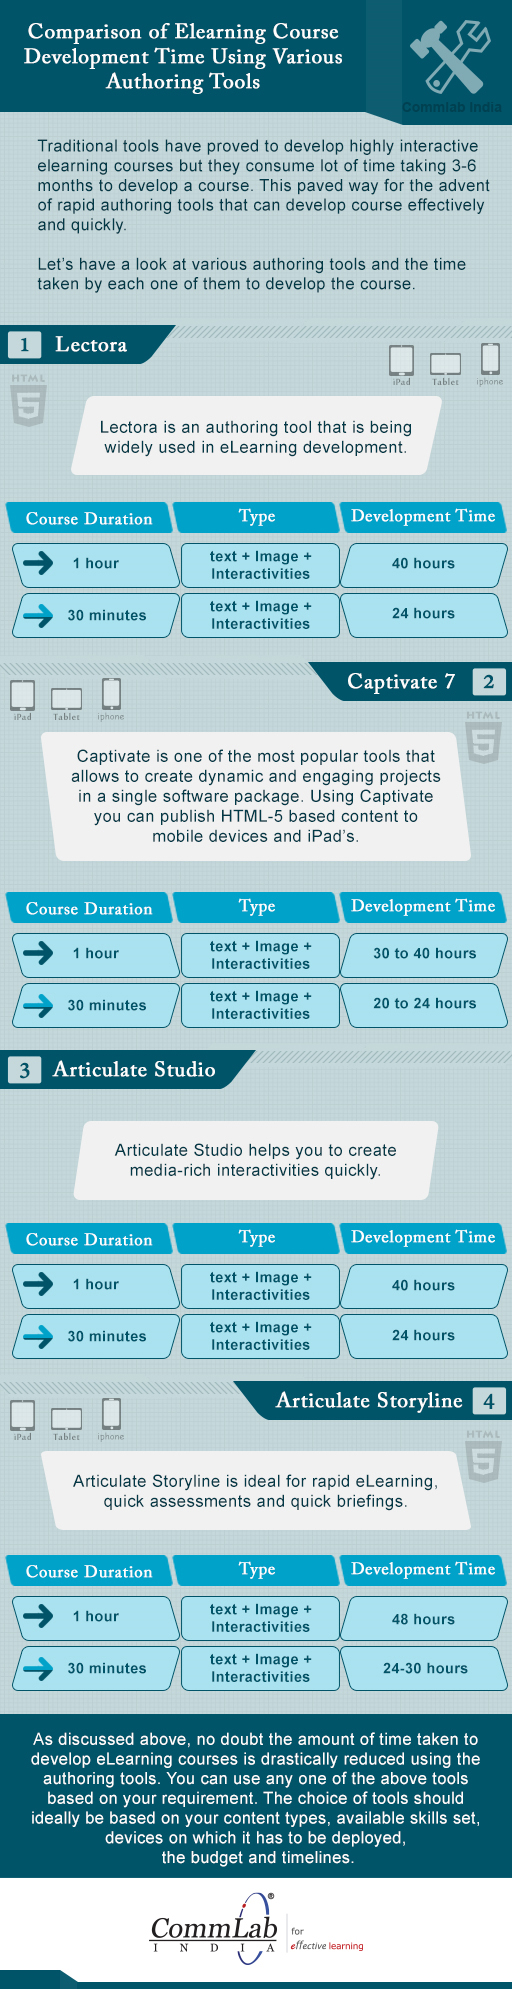 Comparison of eLearning Development Time Using Tools